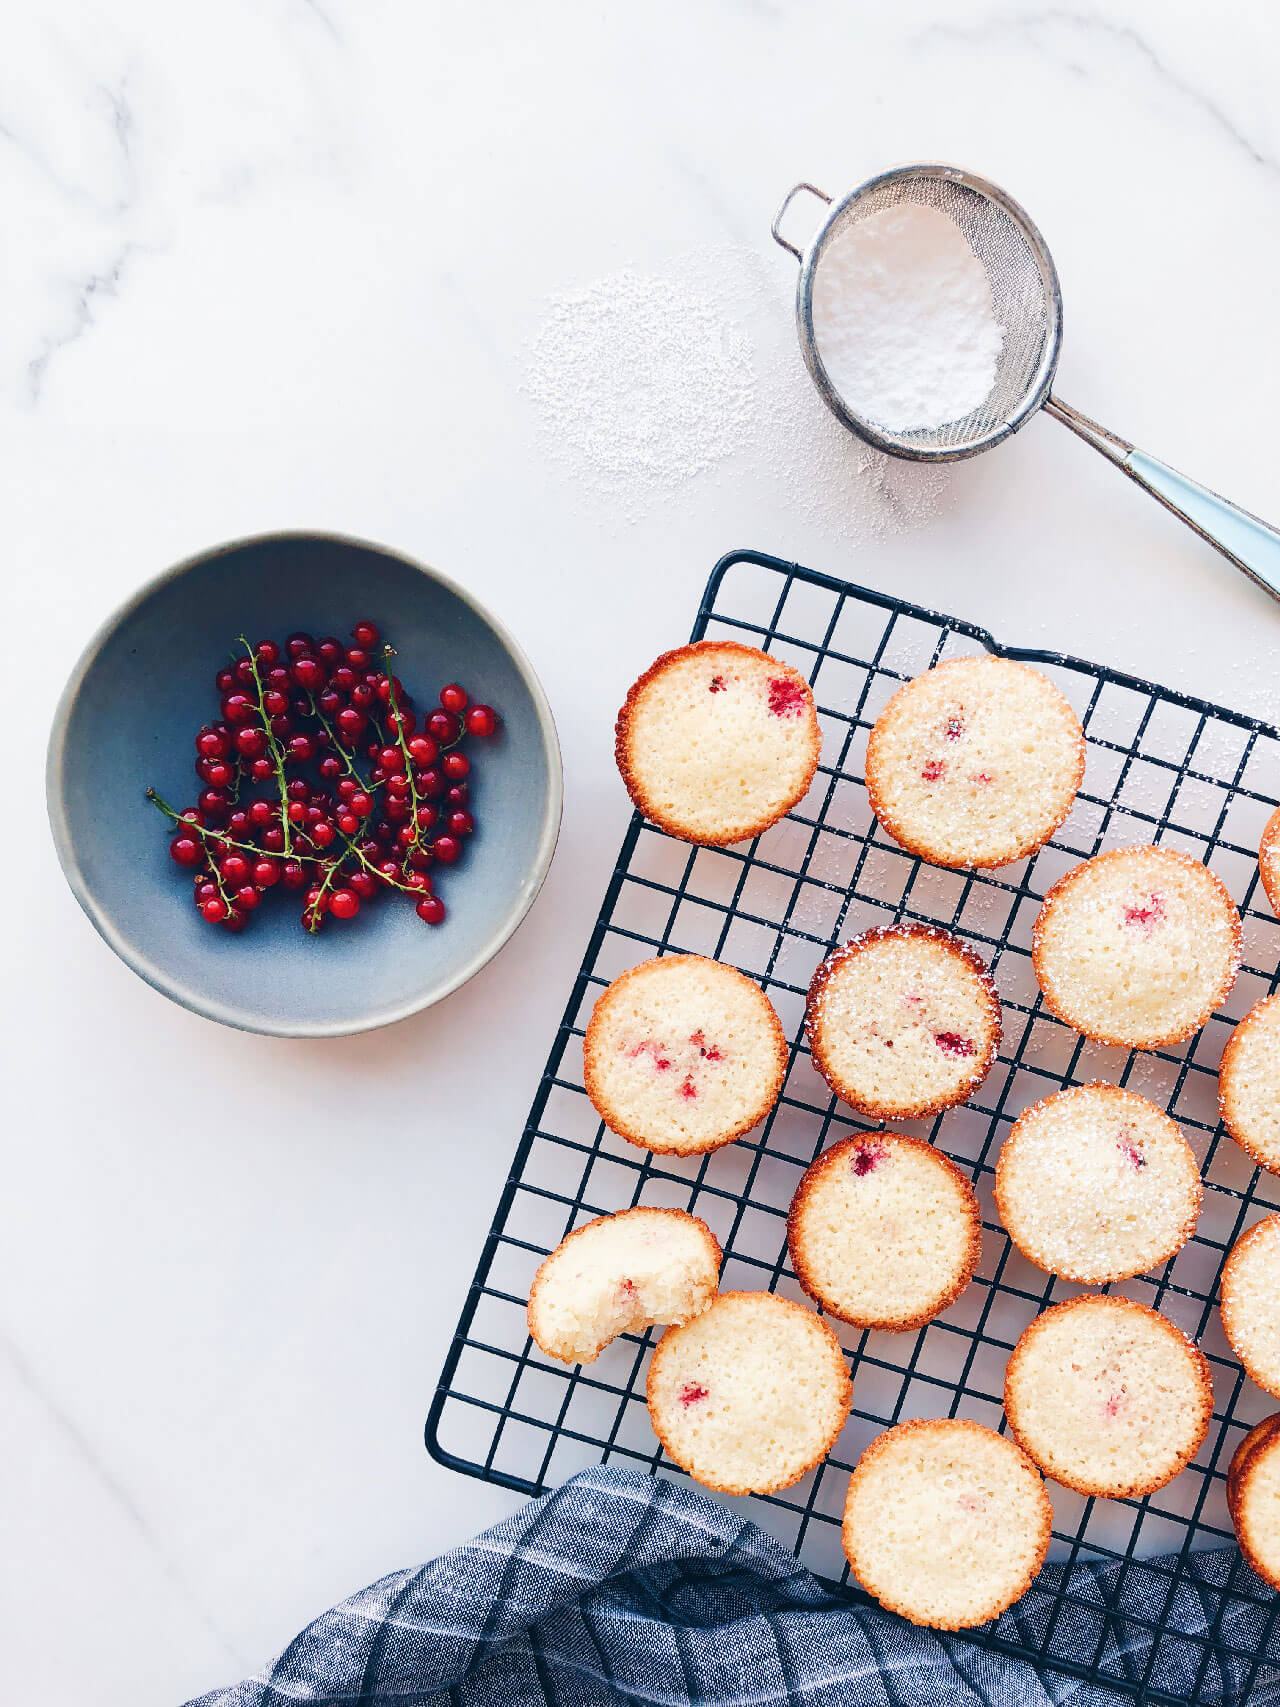 red currant financiers with a bowl of red currants and icing sugar in a small strainer for dusting over the little cakes on a black cooling rack